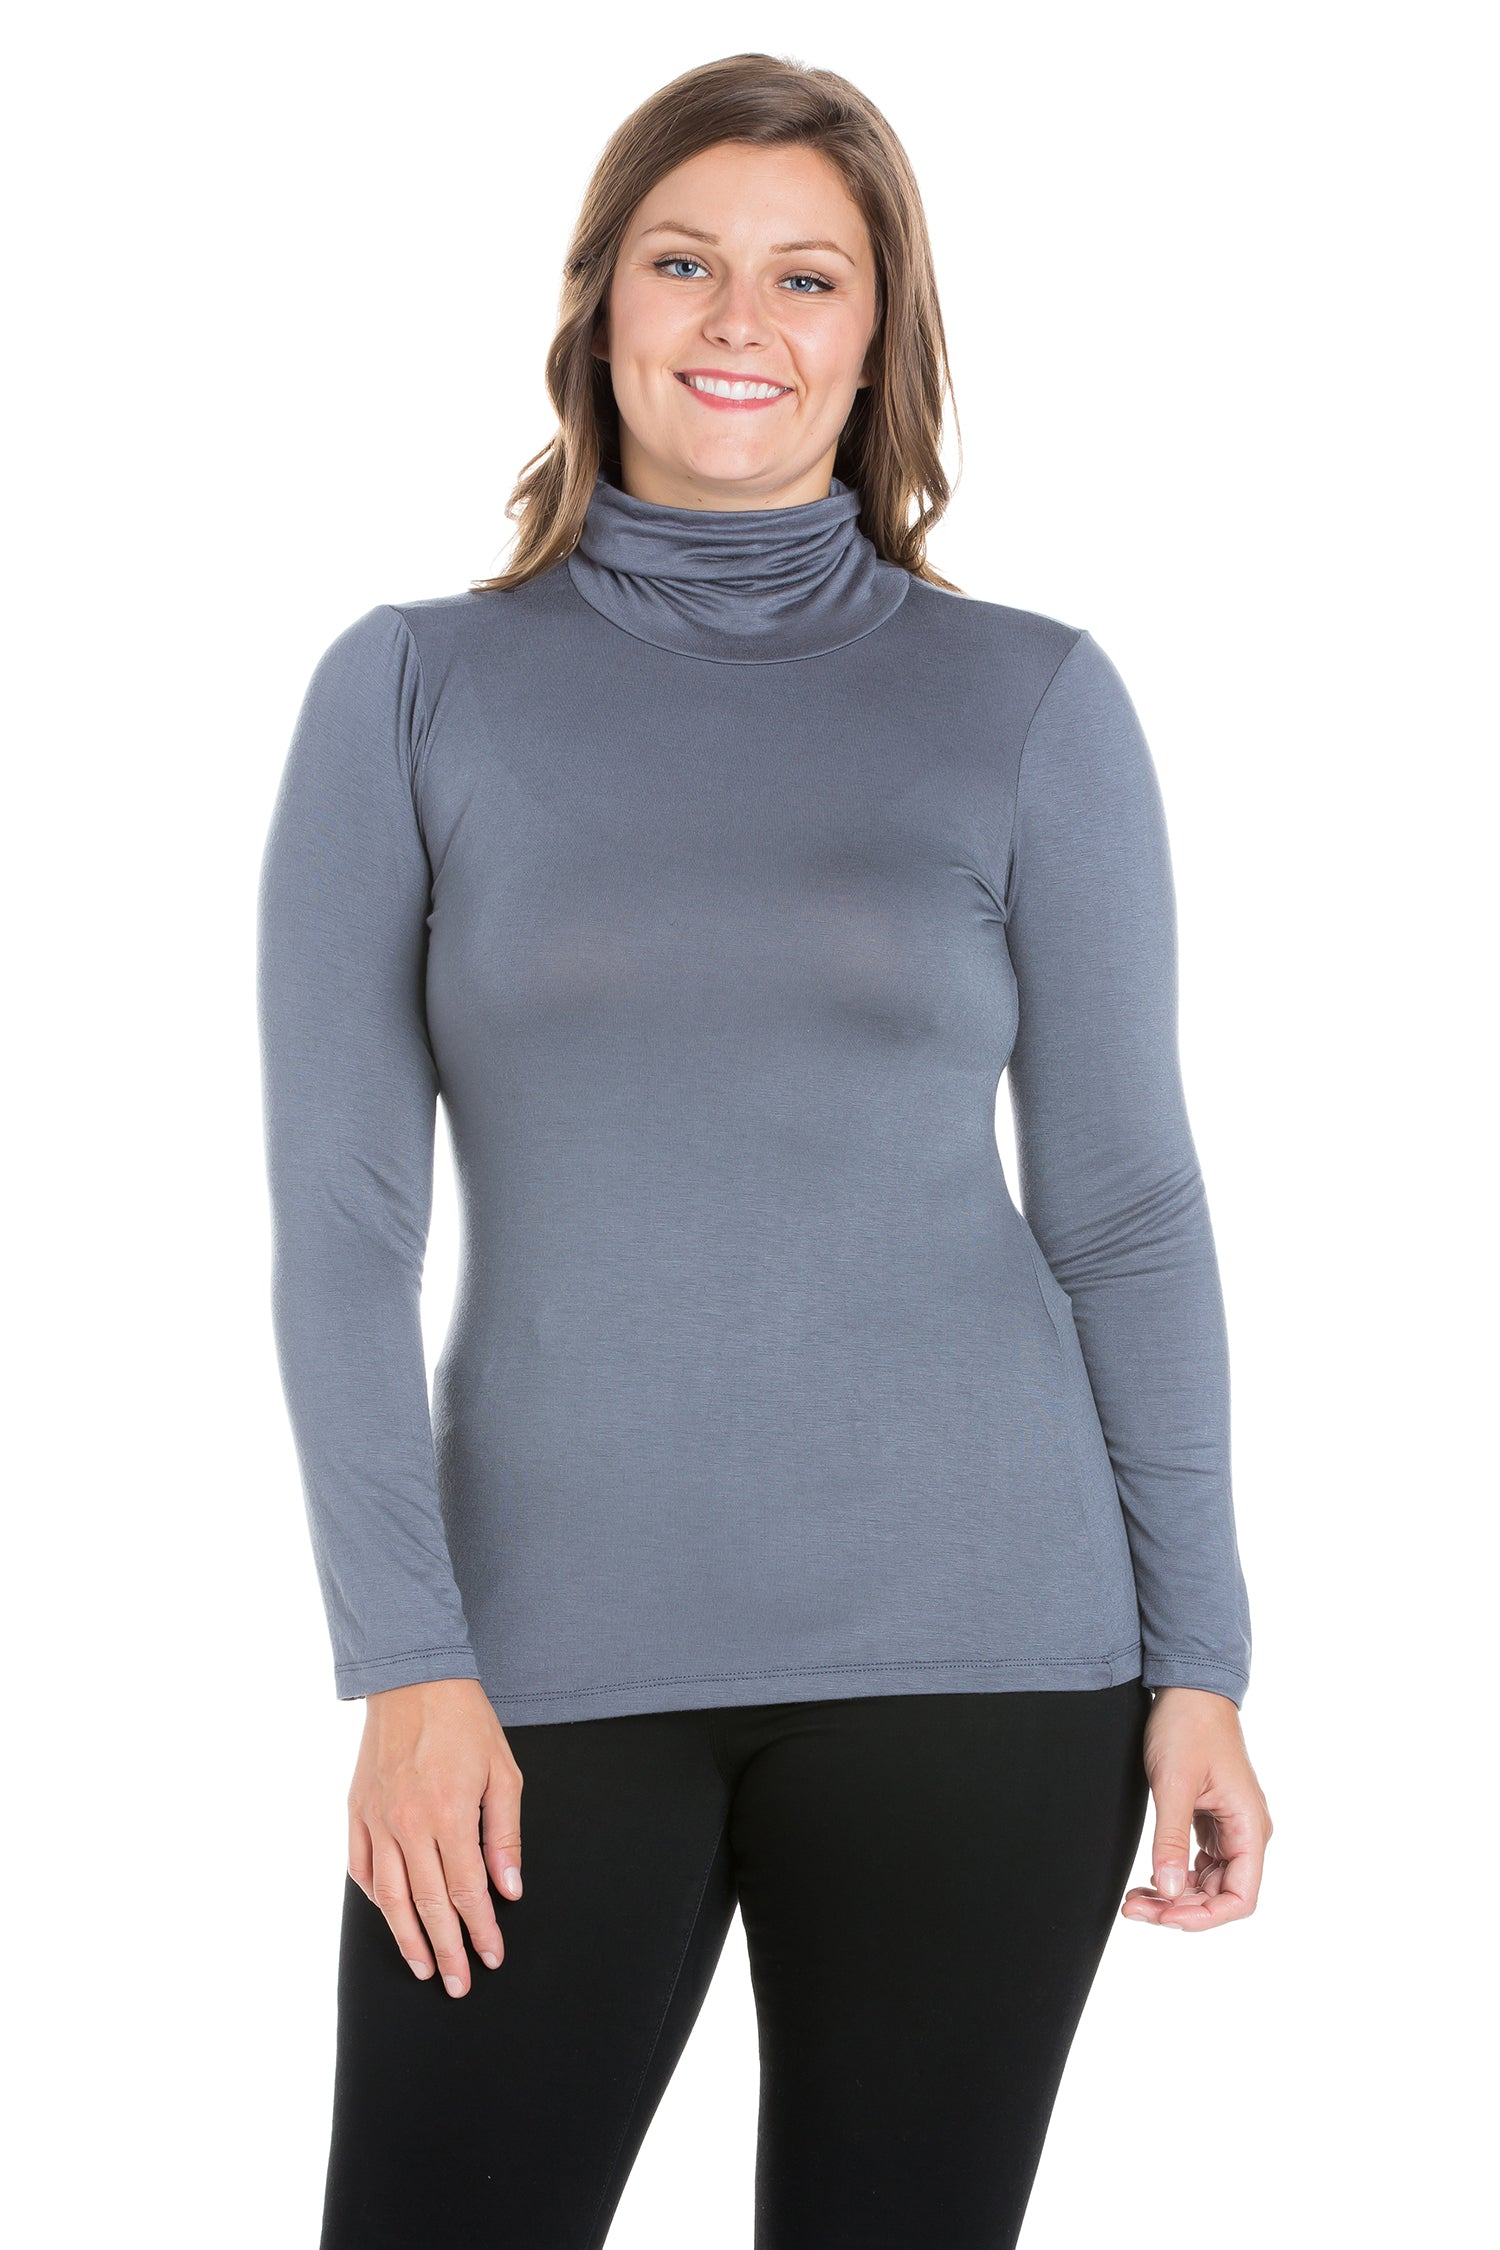 24seven Comfort Apparel Classic Womens Plus Size Long Sleeve Turtleneck-TOPS-24Seven Comfort Apparel-CHARCOAL-1X-24/7 Comfort Apparel